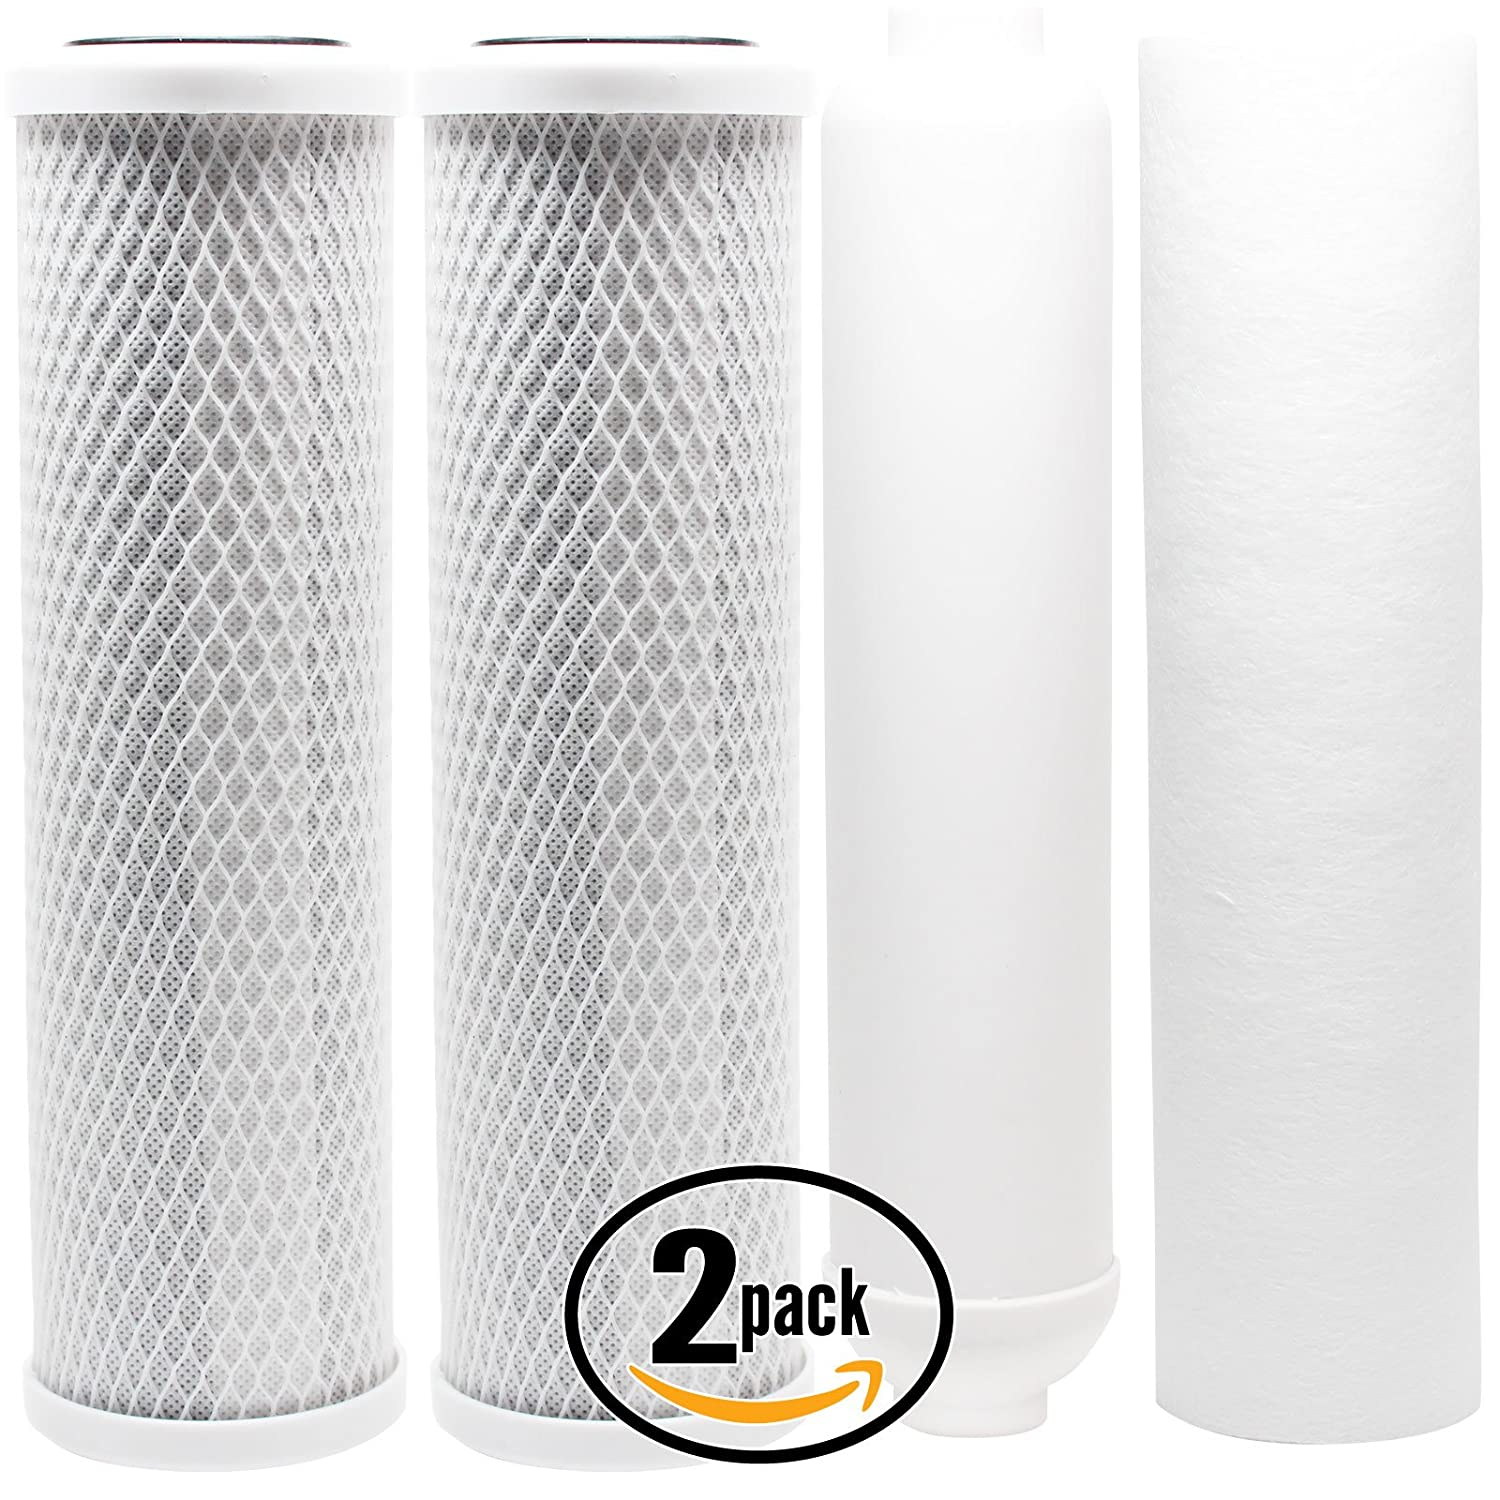 2-Pack Replacement Filter Kit Compatible with Watts W-525P-110 RO System Denali Pure Brand PP Sediment Filter /& Inline Filter Cartridge Includes Carbon Block Filters